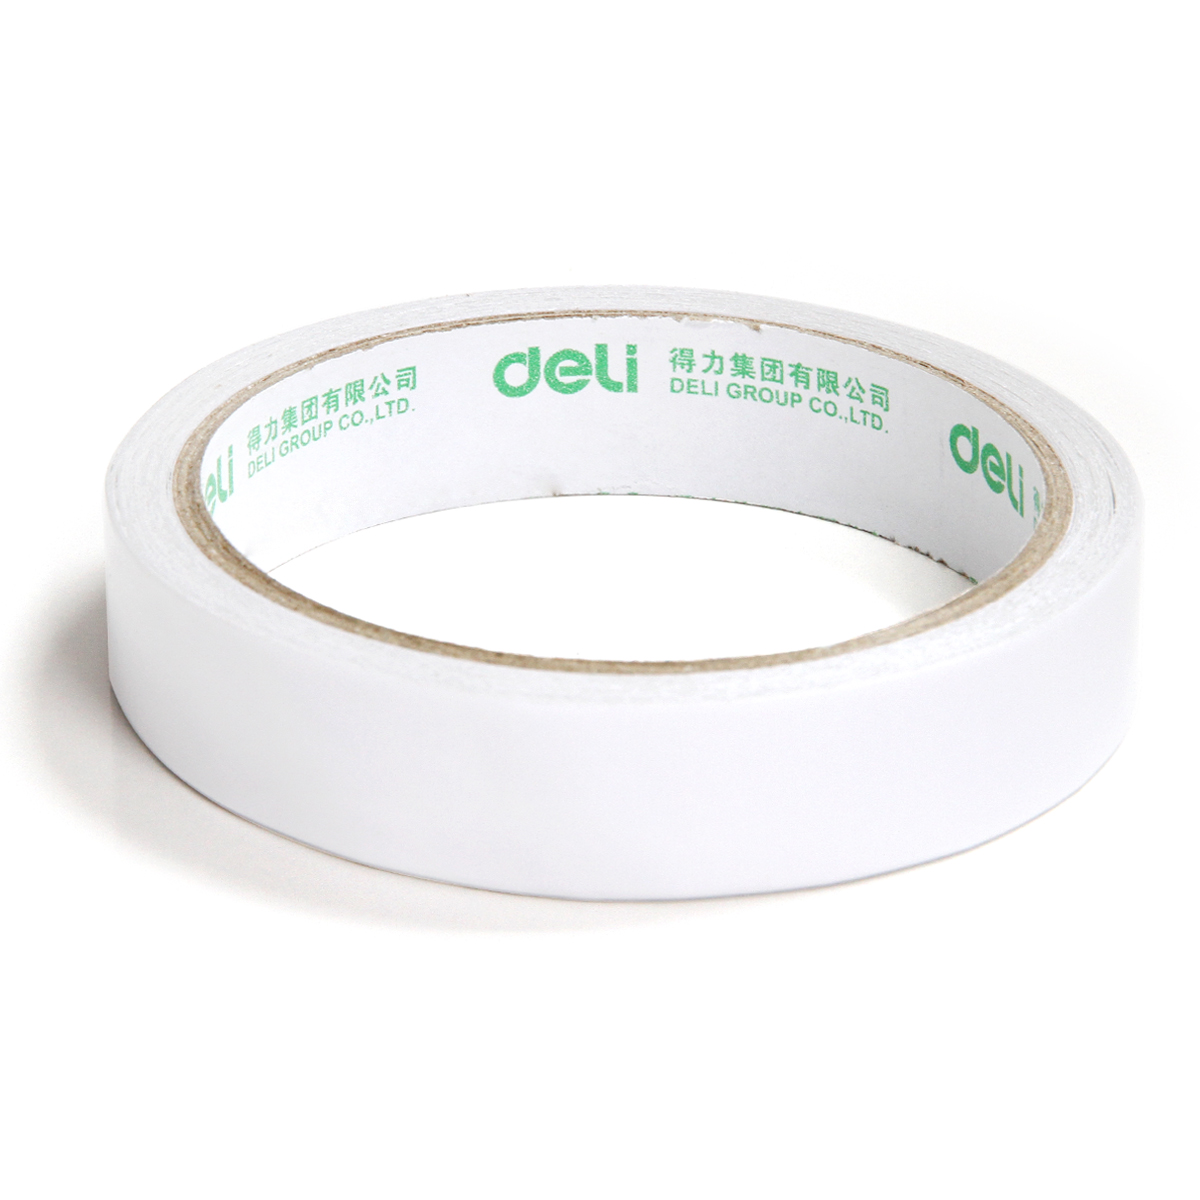 Deli 18mm X 10y / 18mm X 9.1m Double-Sided Tape White Strong Sticky Glue Tape Powerful Doubles Faced Adhesive For Office